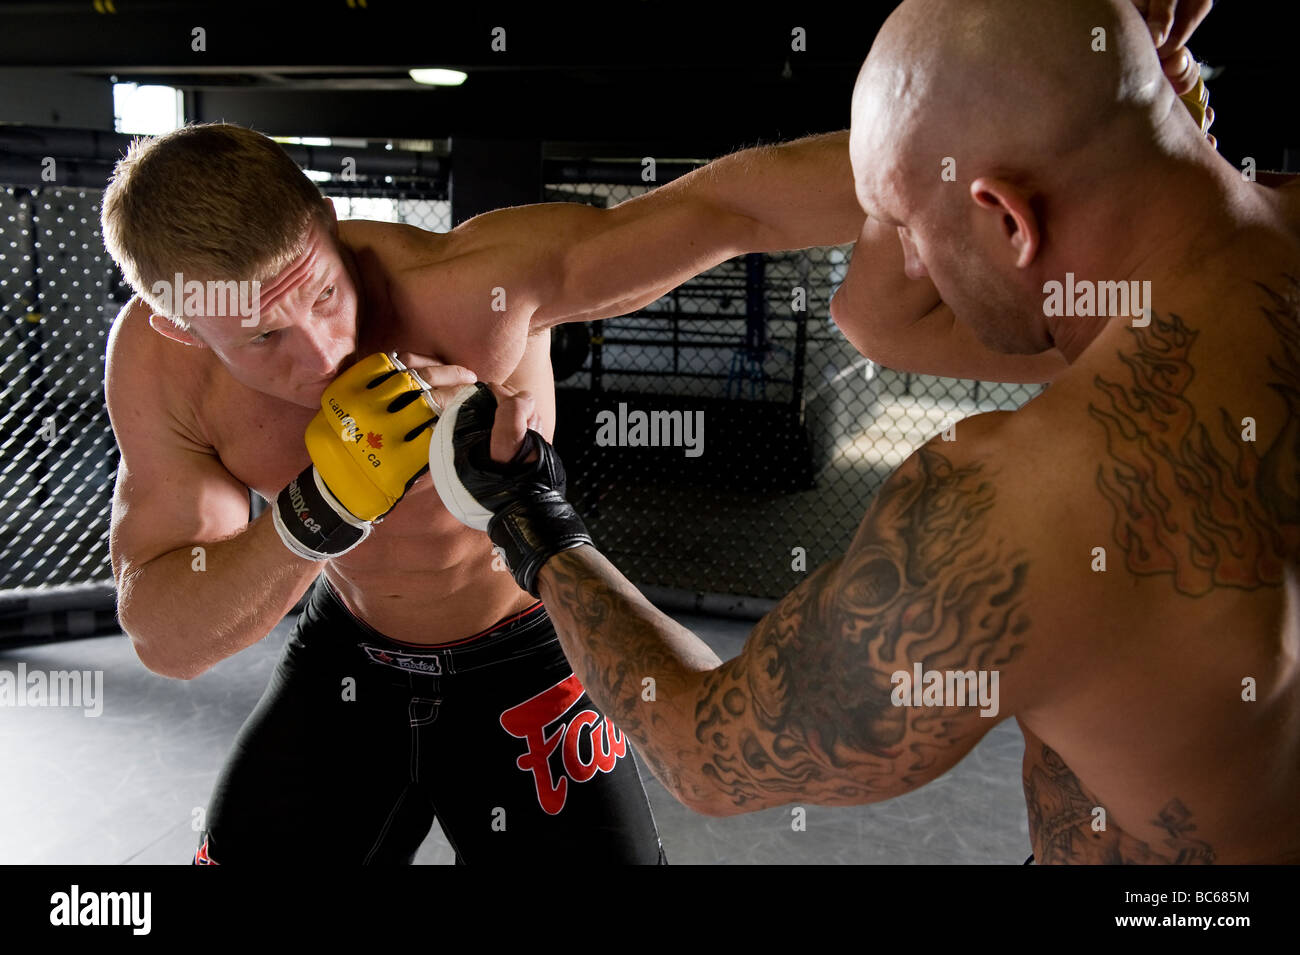 Two UFC fighters in a match. - Stock Image